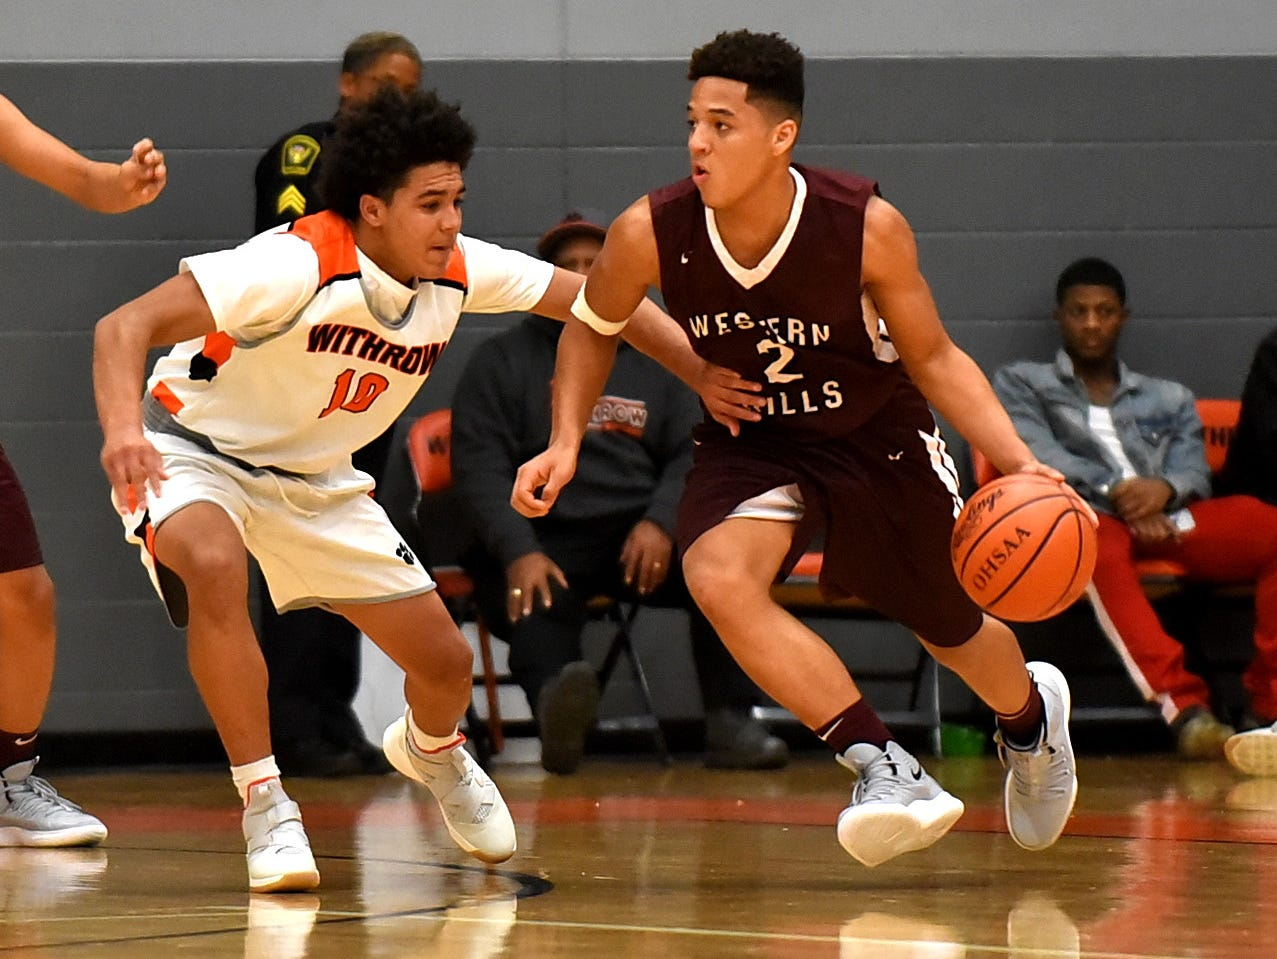 Julian Norman (2) of Western Hills dribbles through the hand check defense of Withrow's Winston Combs (10), Nov. 30, 2018.